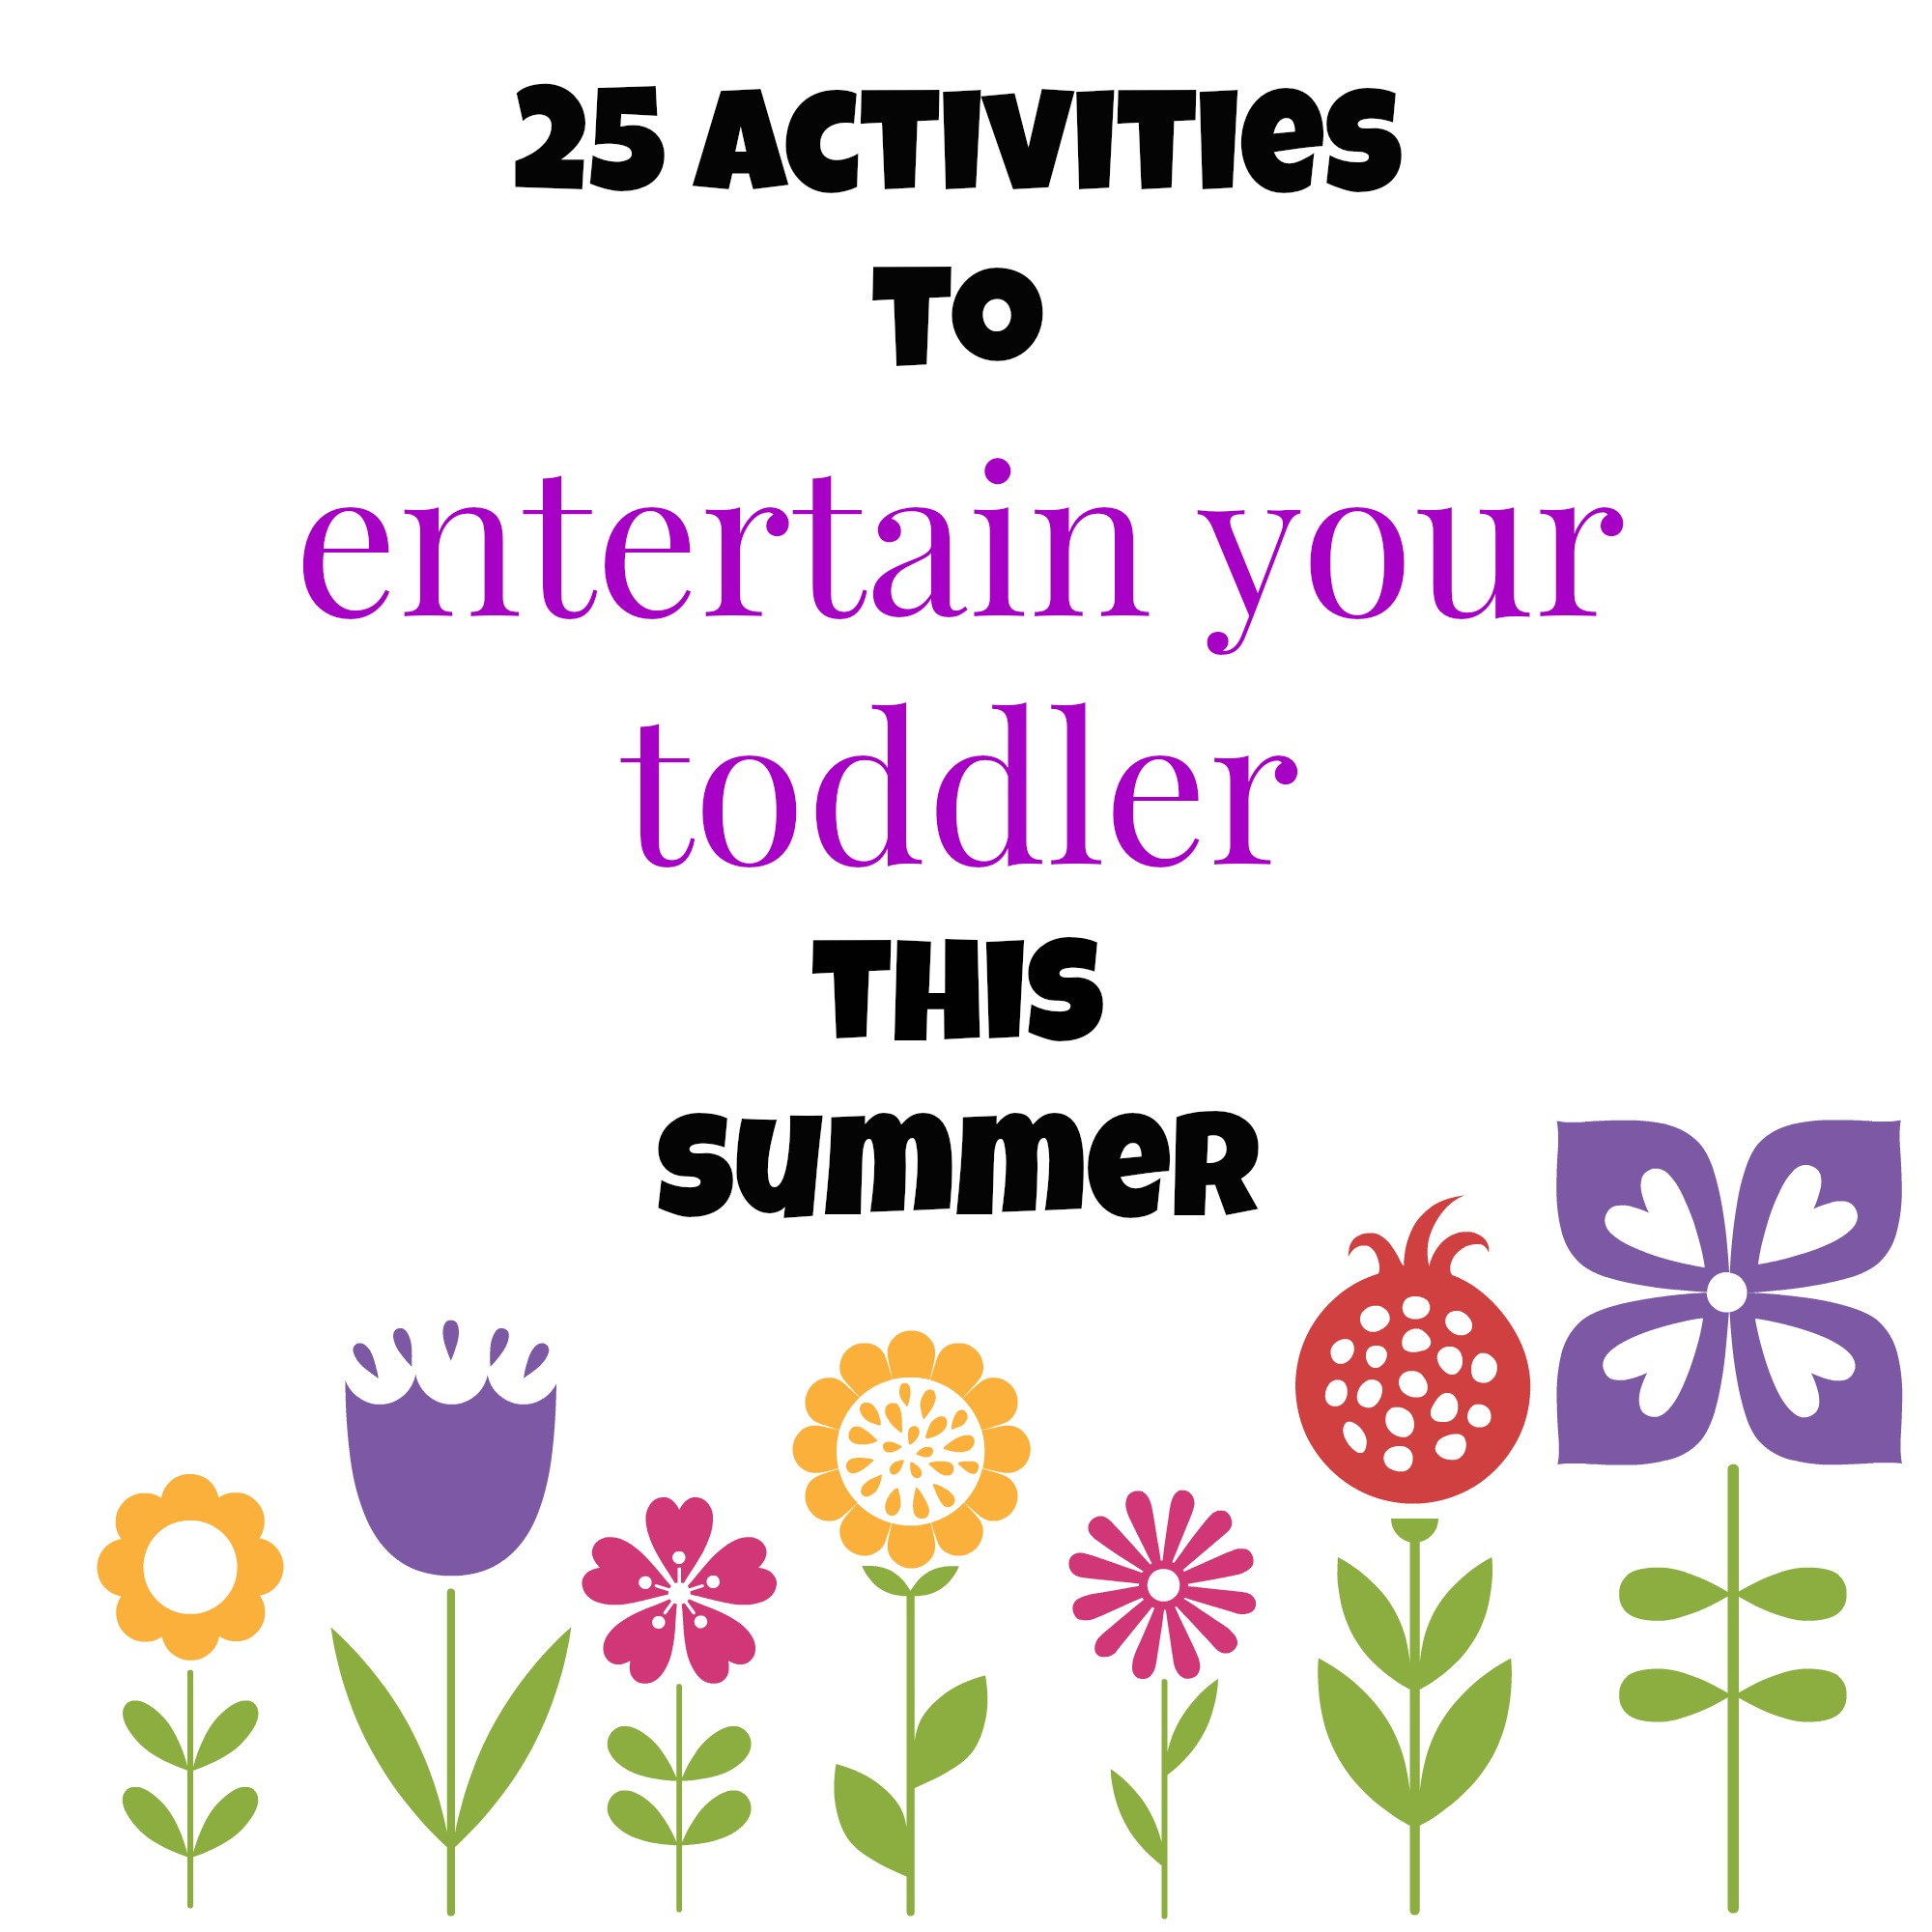 25 Activities to Entertain Your Toddler This Summer